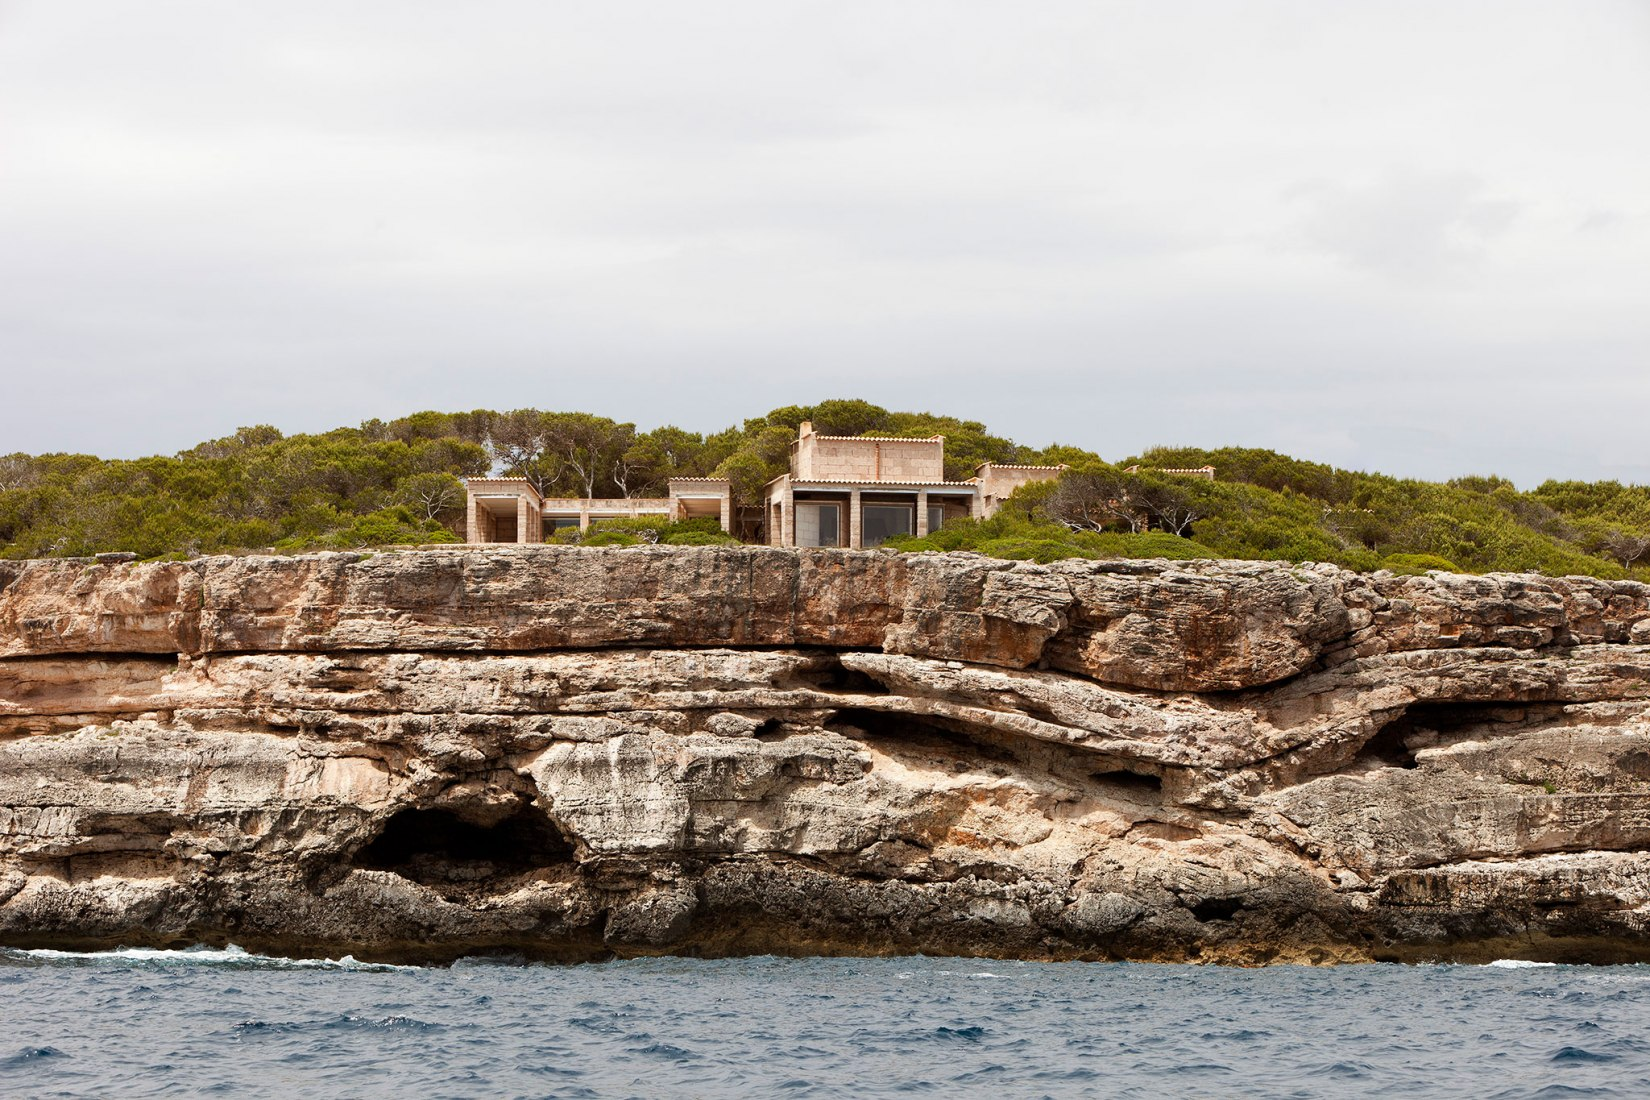 Jørn Utzon's Can Lis House. Photograph by Torben Eskerod courtesy of The Utzon Foundation